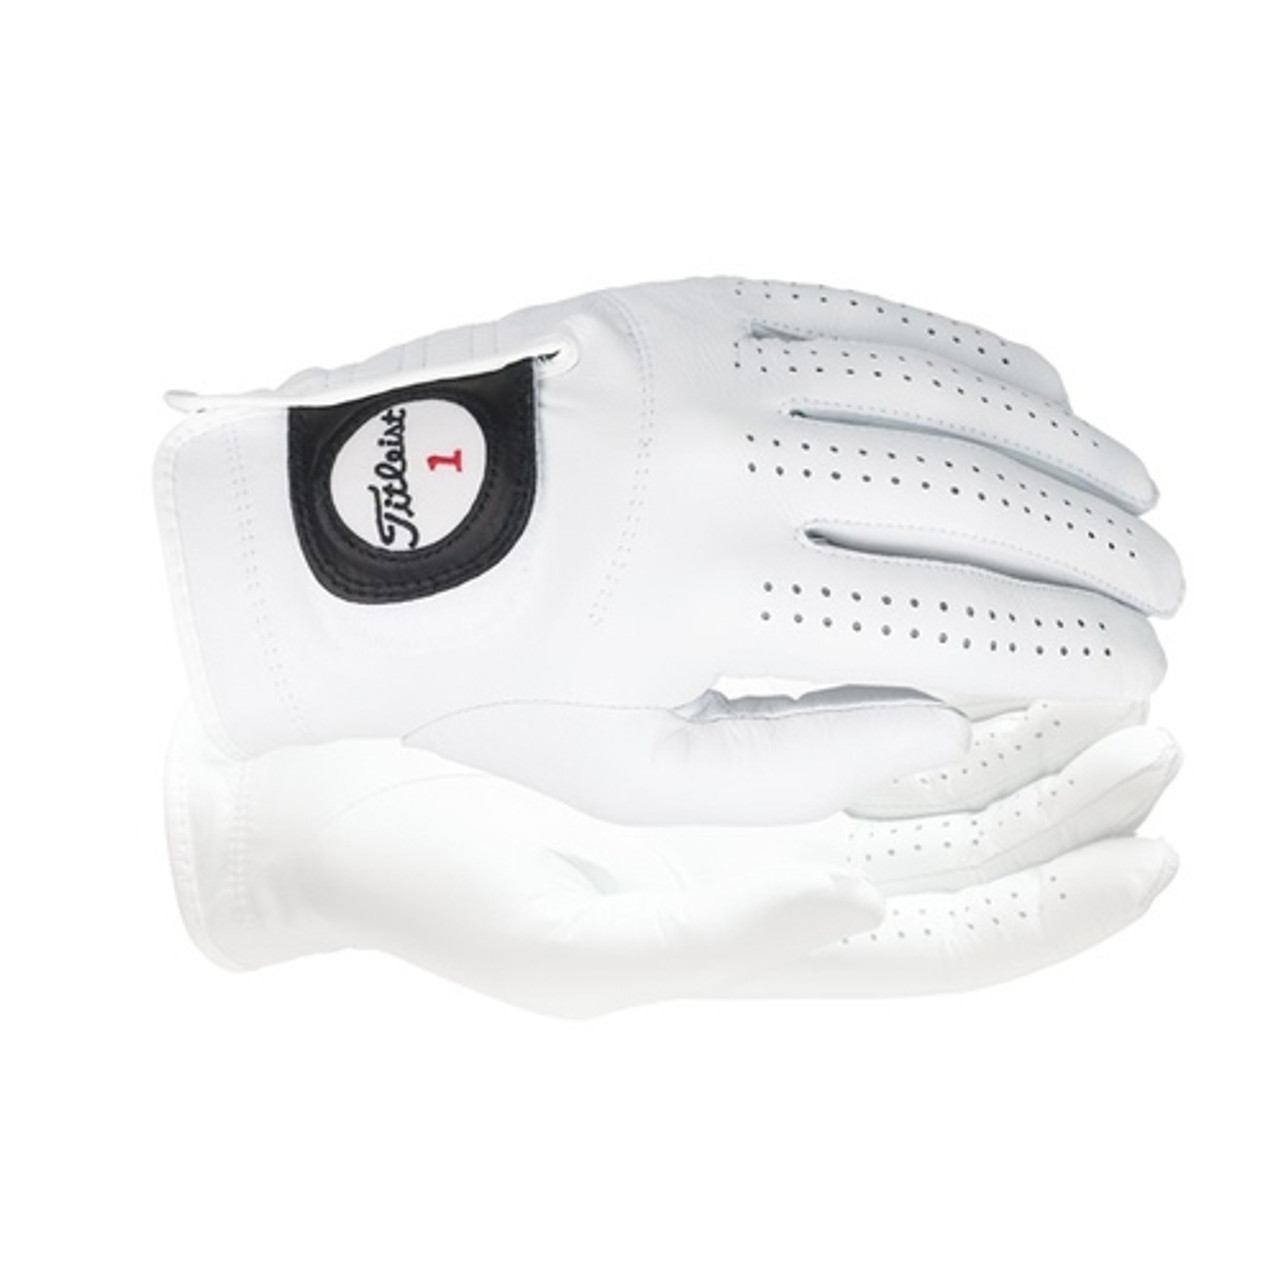 Titleist Players Golf Gloves 6 Pack